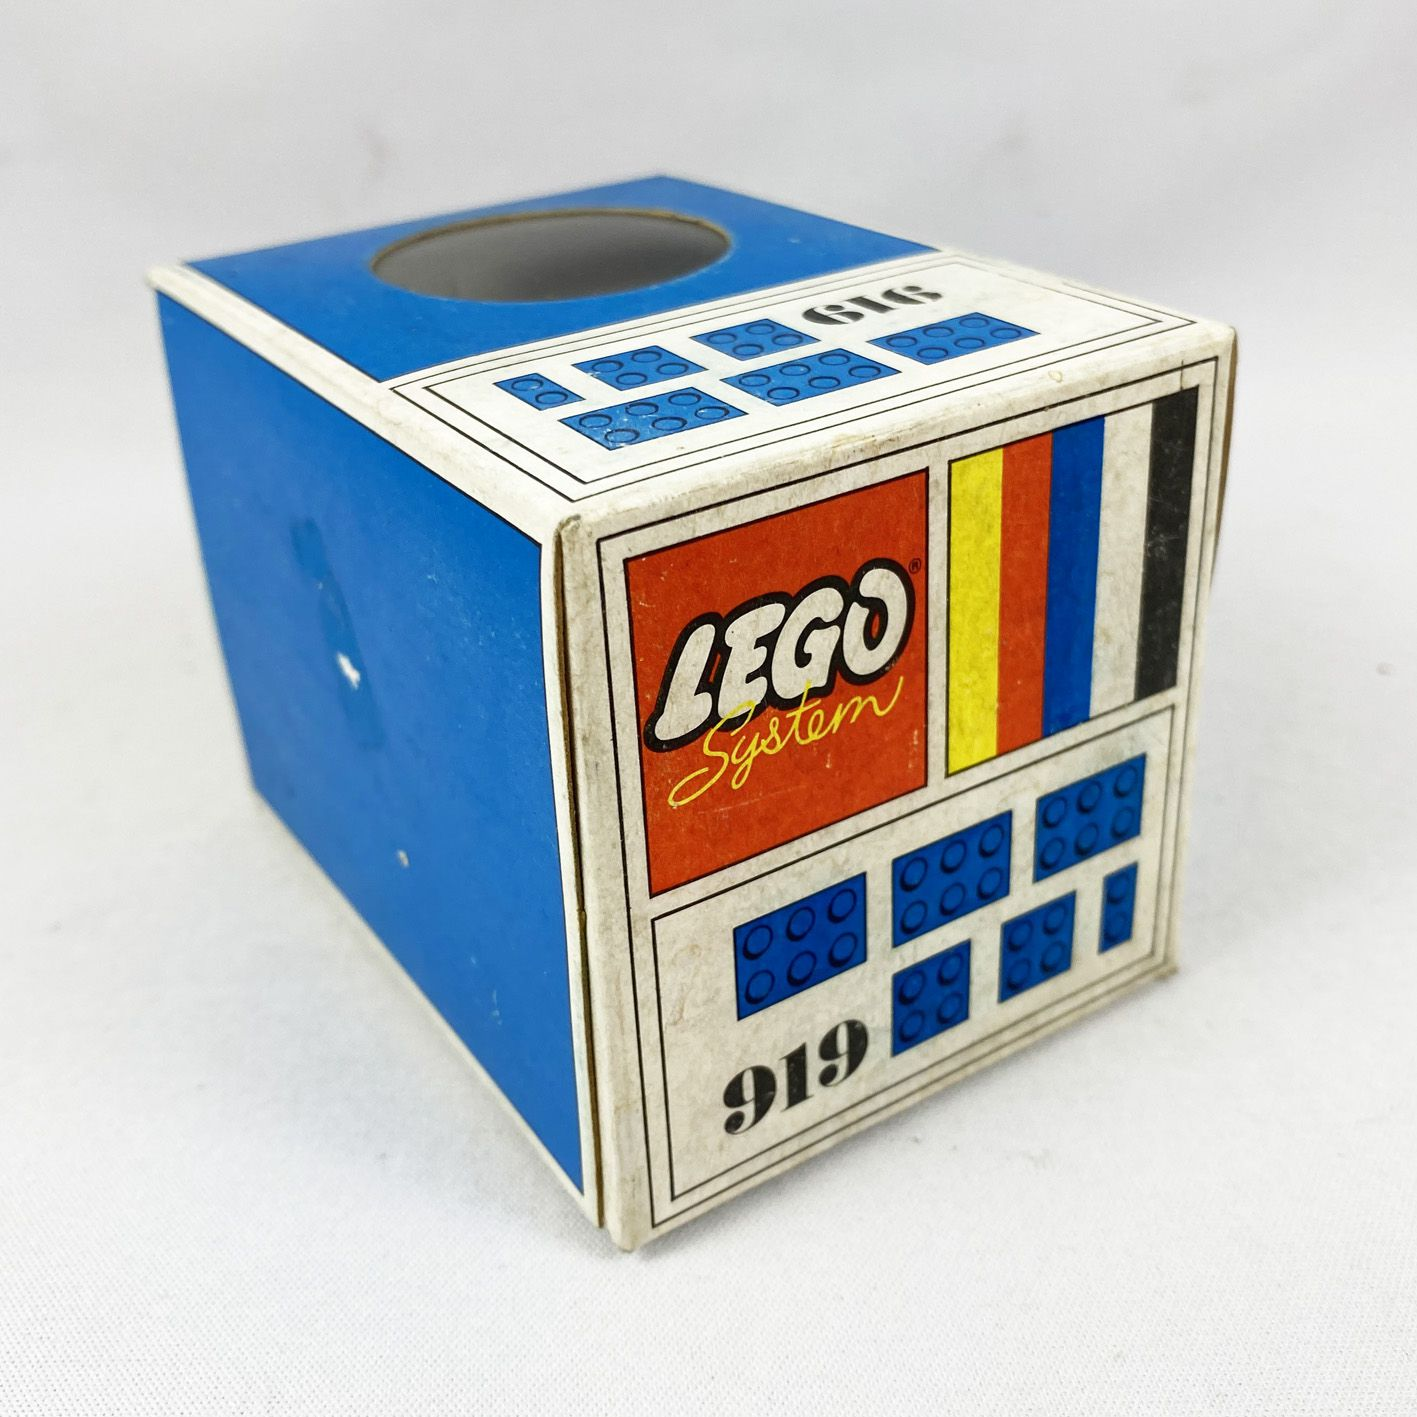 Lego Ref.919 - Bricks with 2, 4 and 6 Studs (Blue)